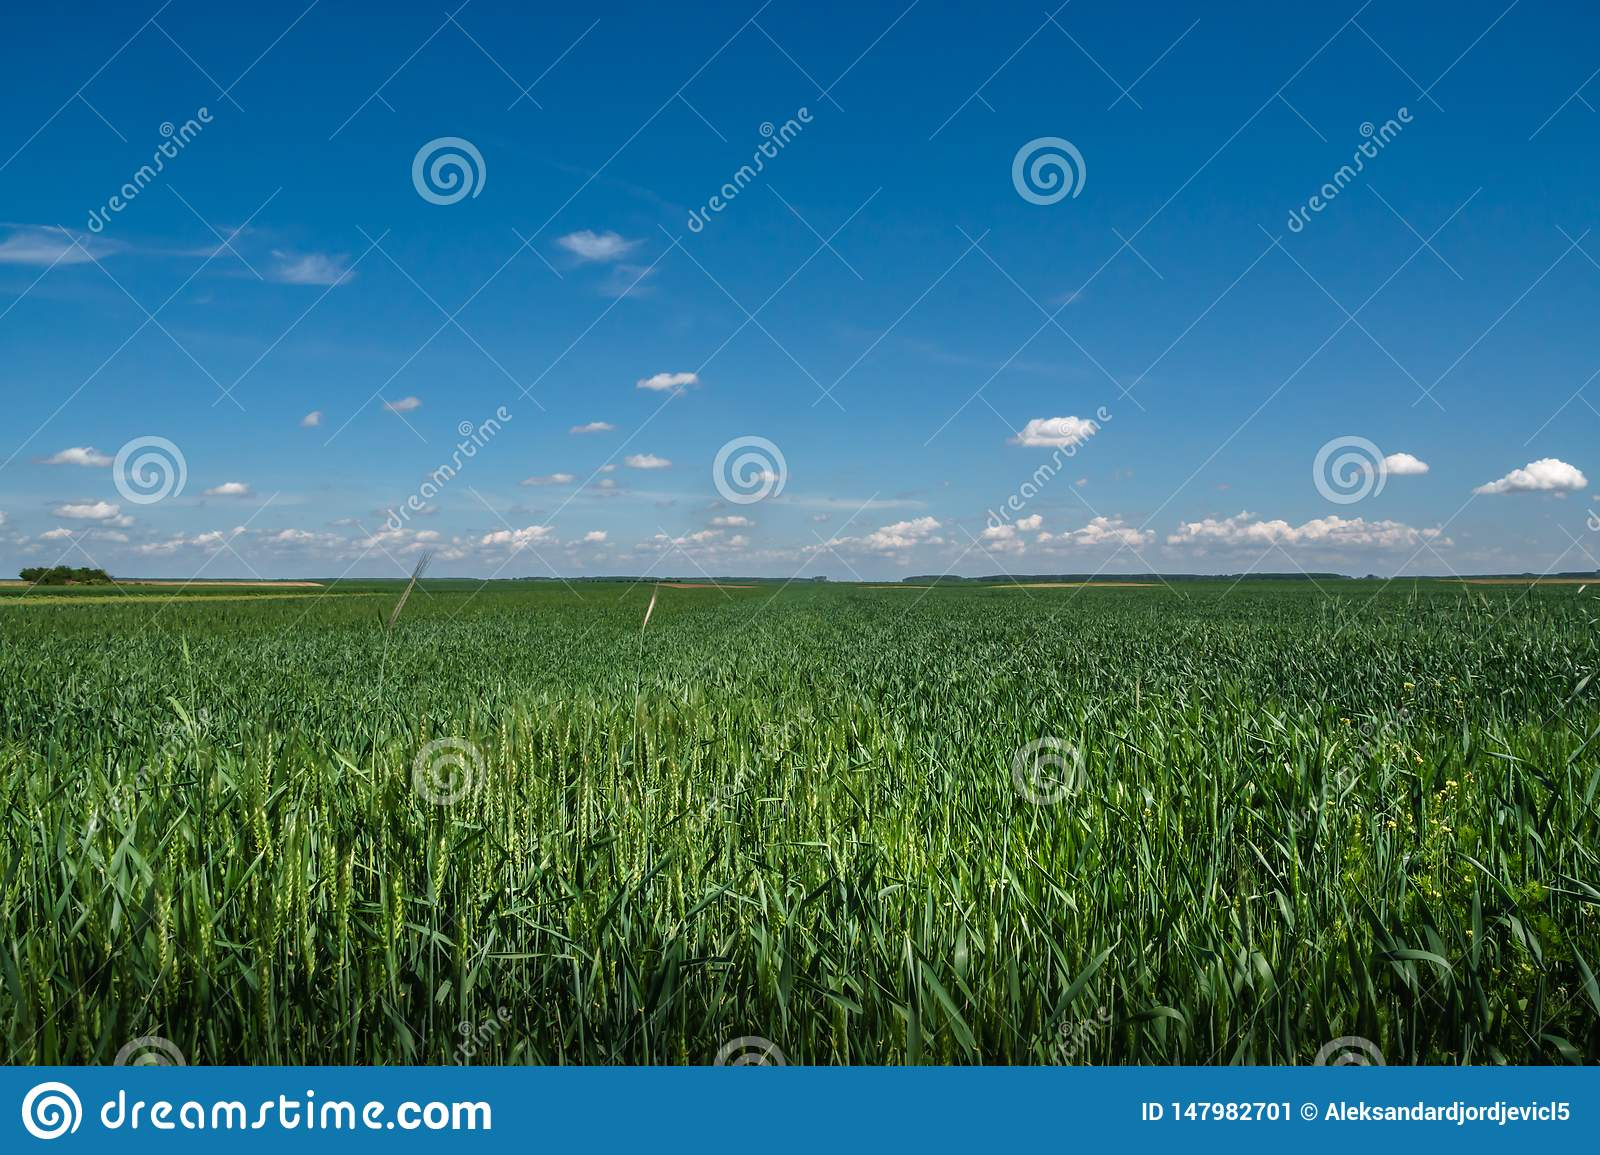 Wheat grass field with colorful blue skies